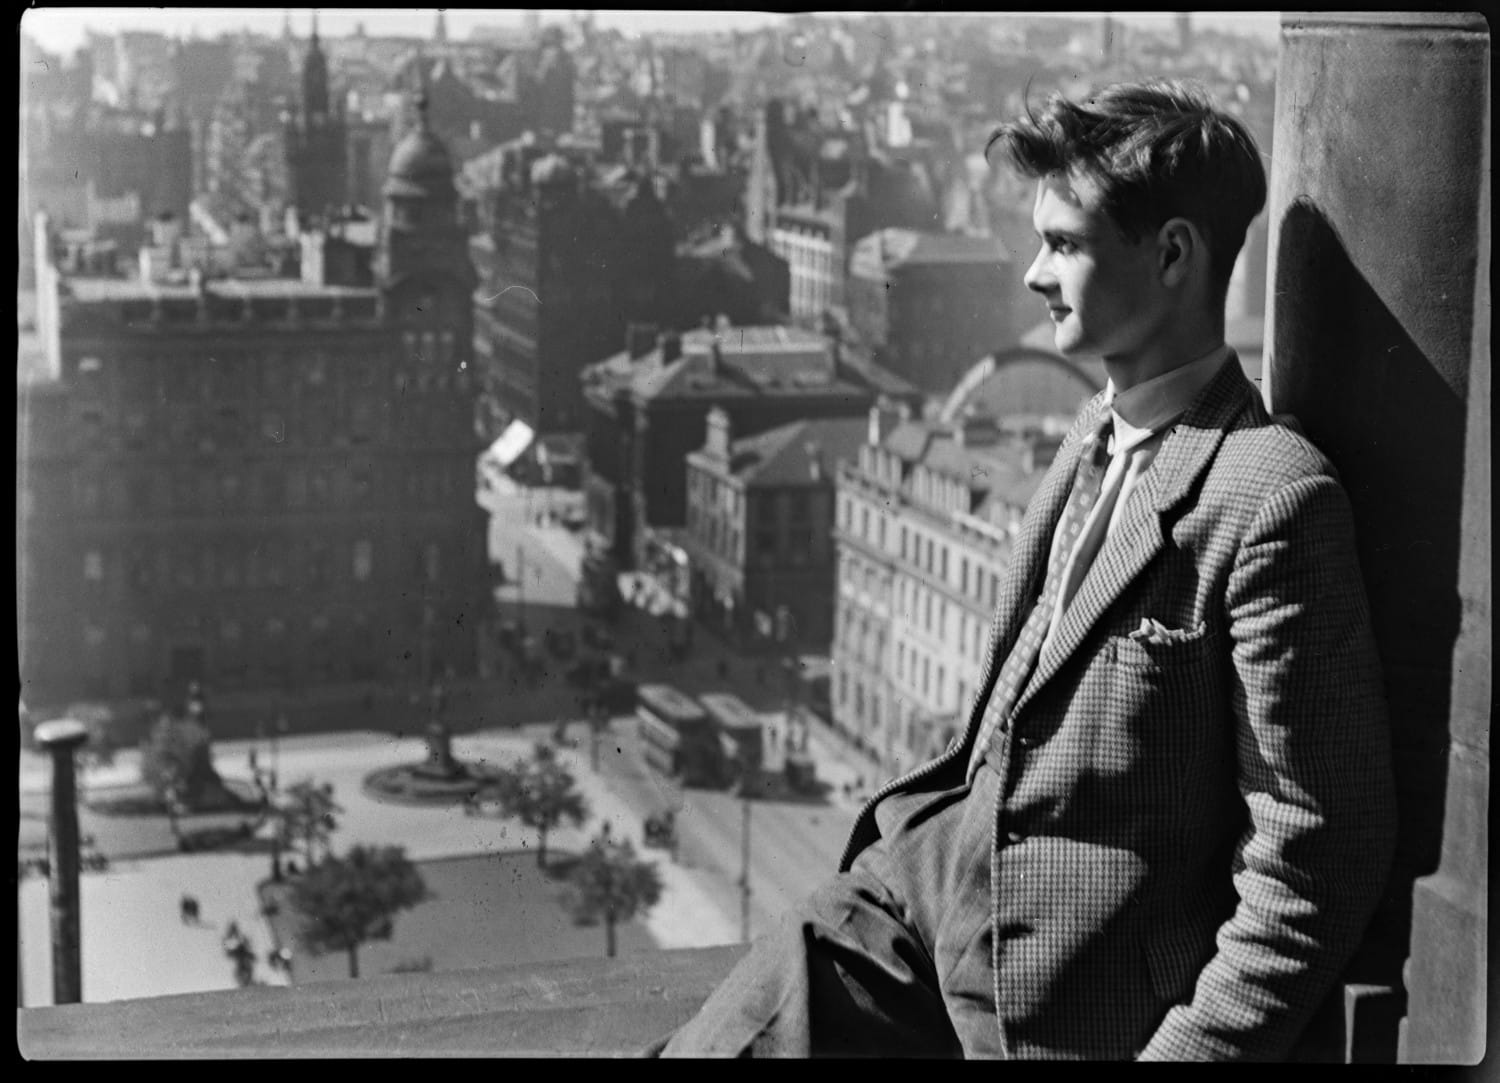 Douglas Graham on the roof of the City Chambers